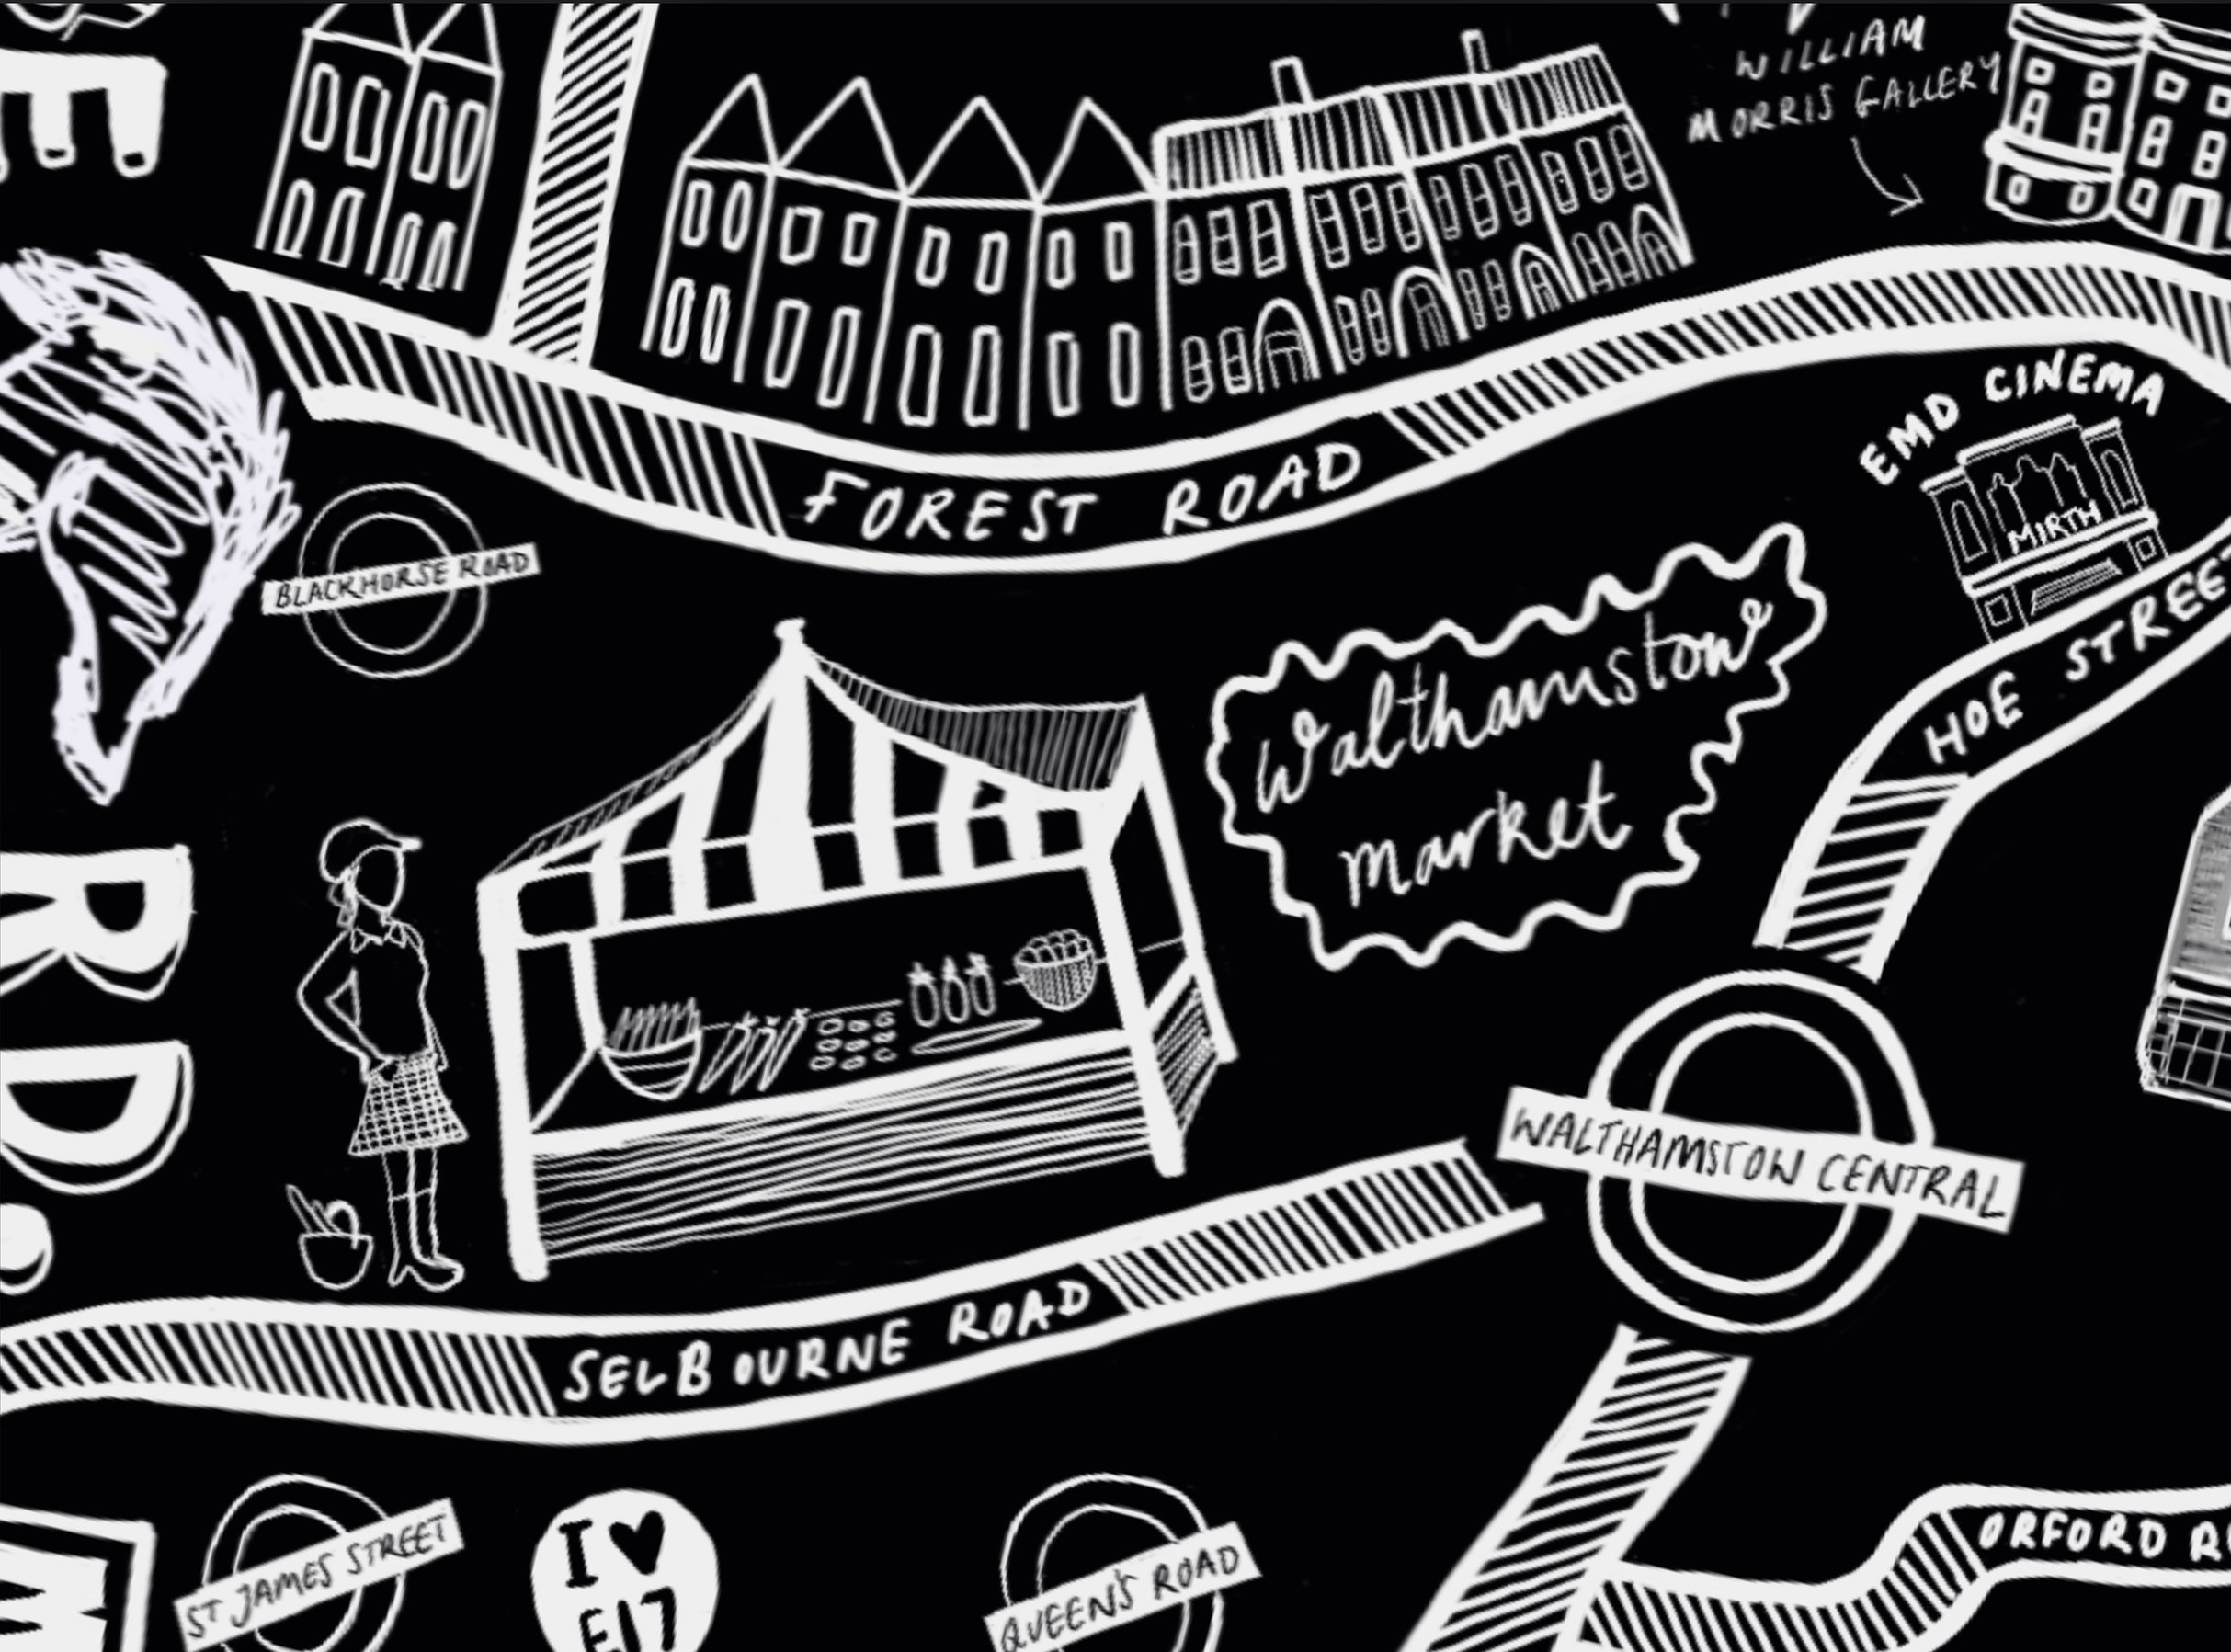 Snippet from a hand-drawn map of Walthamstow (London E17)